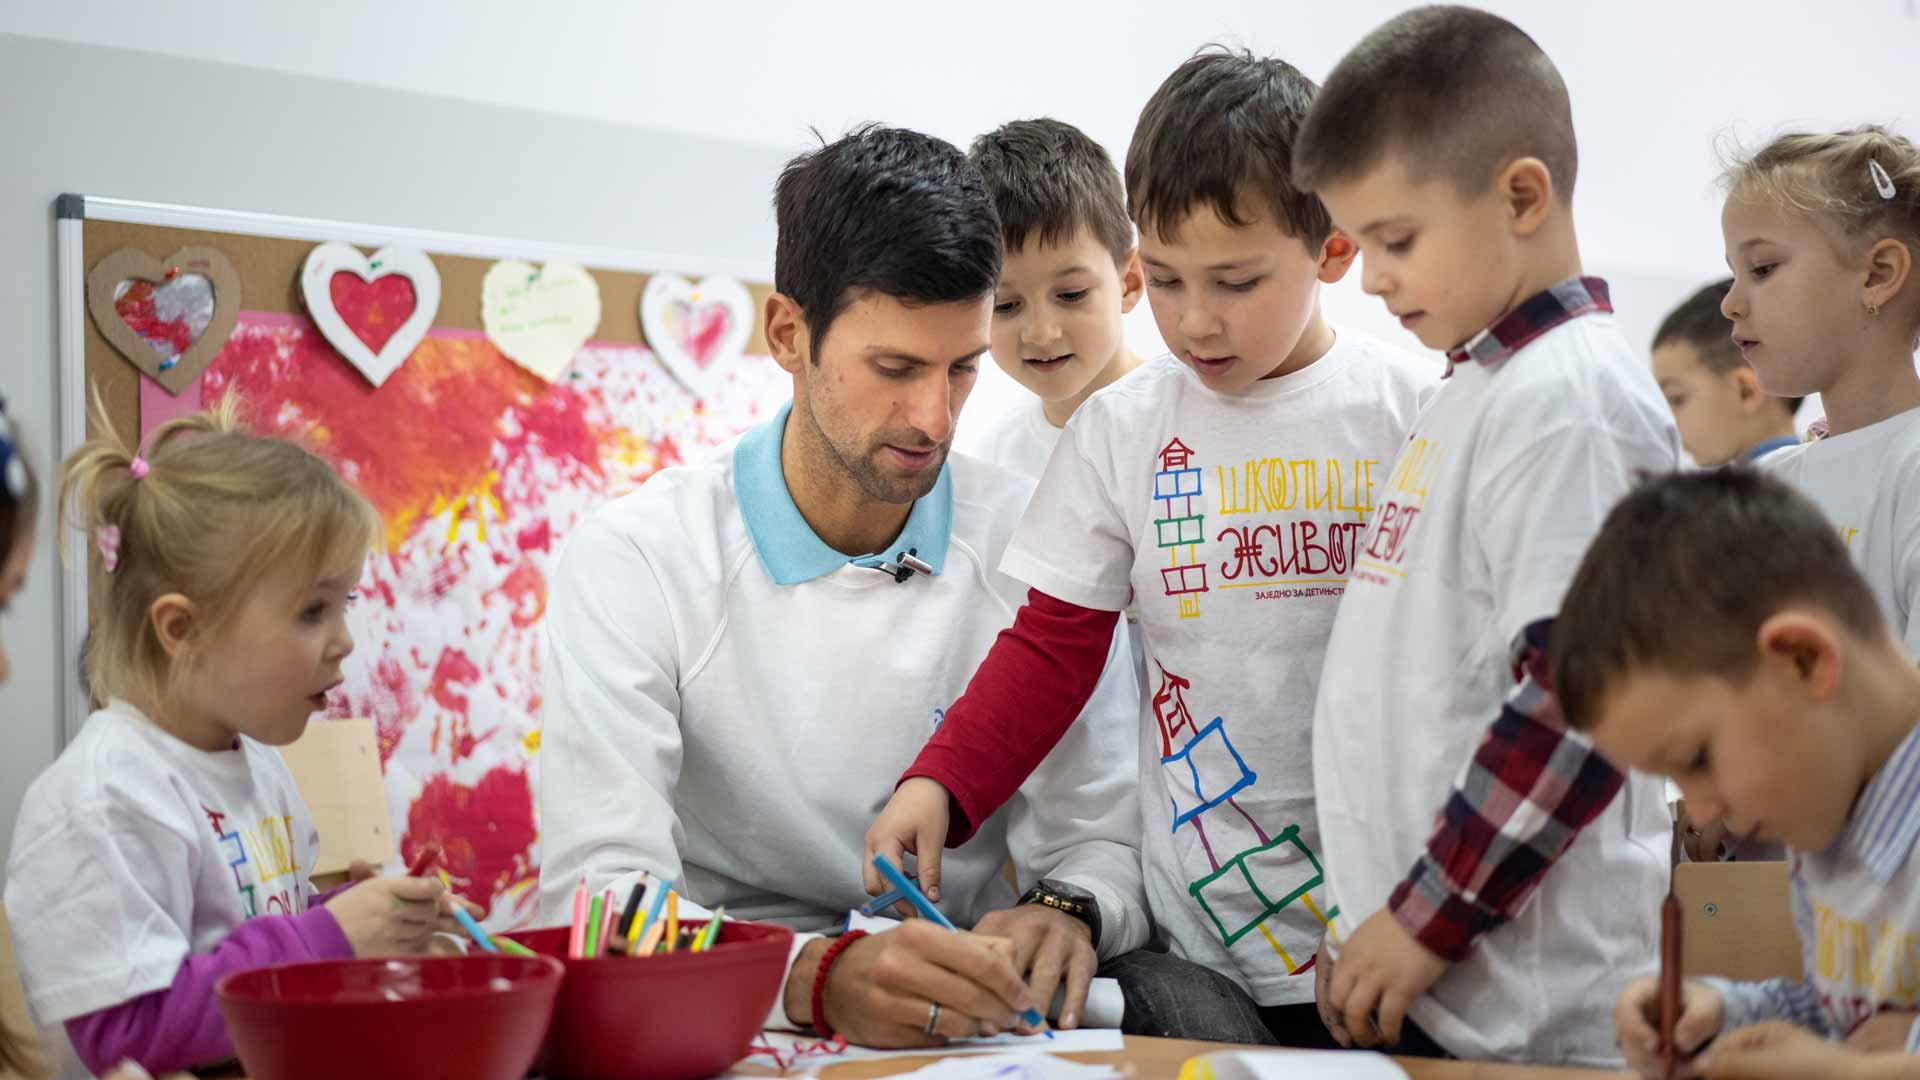 Novak Djokovic Aims To Raise 100 000 In Season Of Giving To Match All Donations Atp Tour Tennis